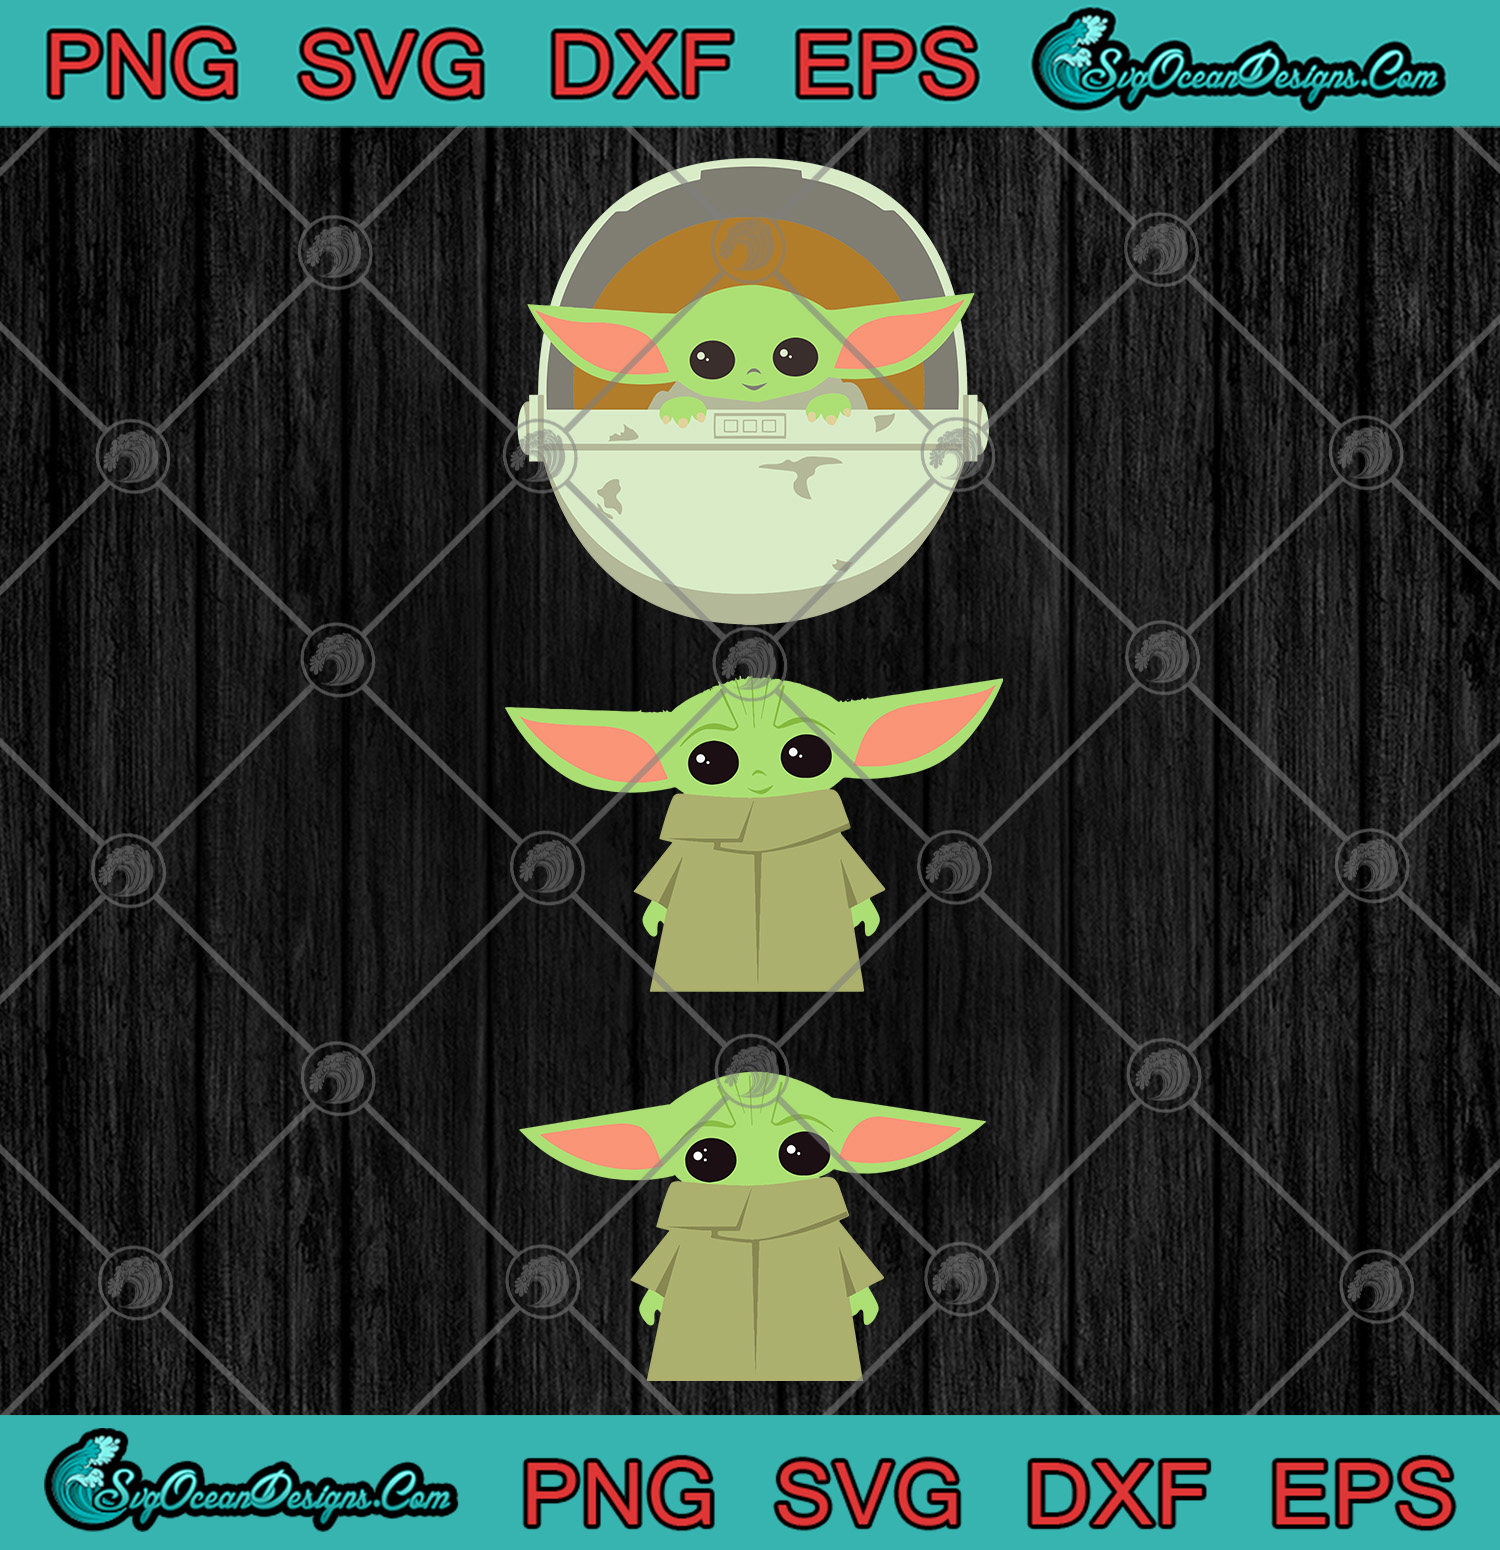 Star Wars The Mandalorian The Child Cartoon Poses Svg Png Eps Dxf Baby Yoda Svg Designs Digital Download